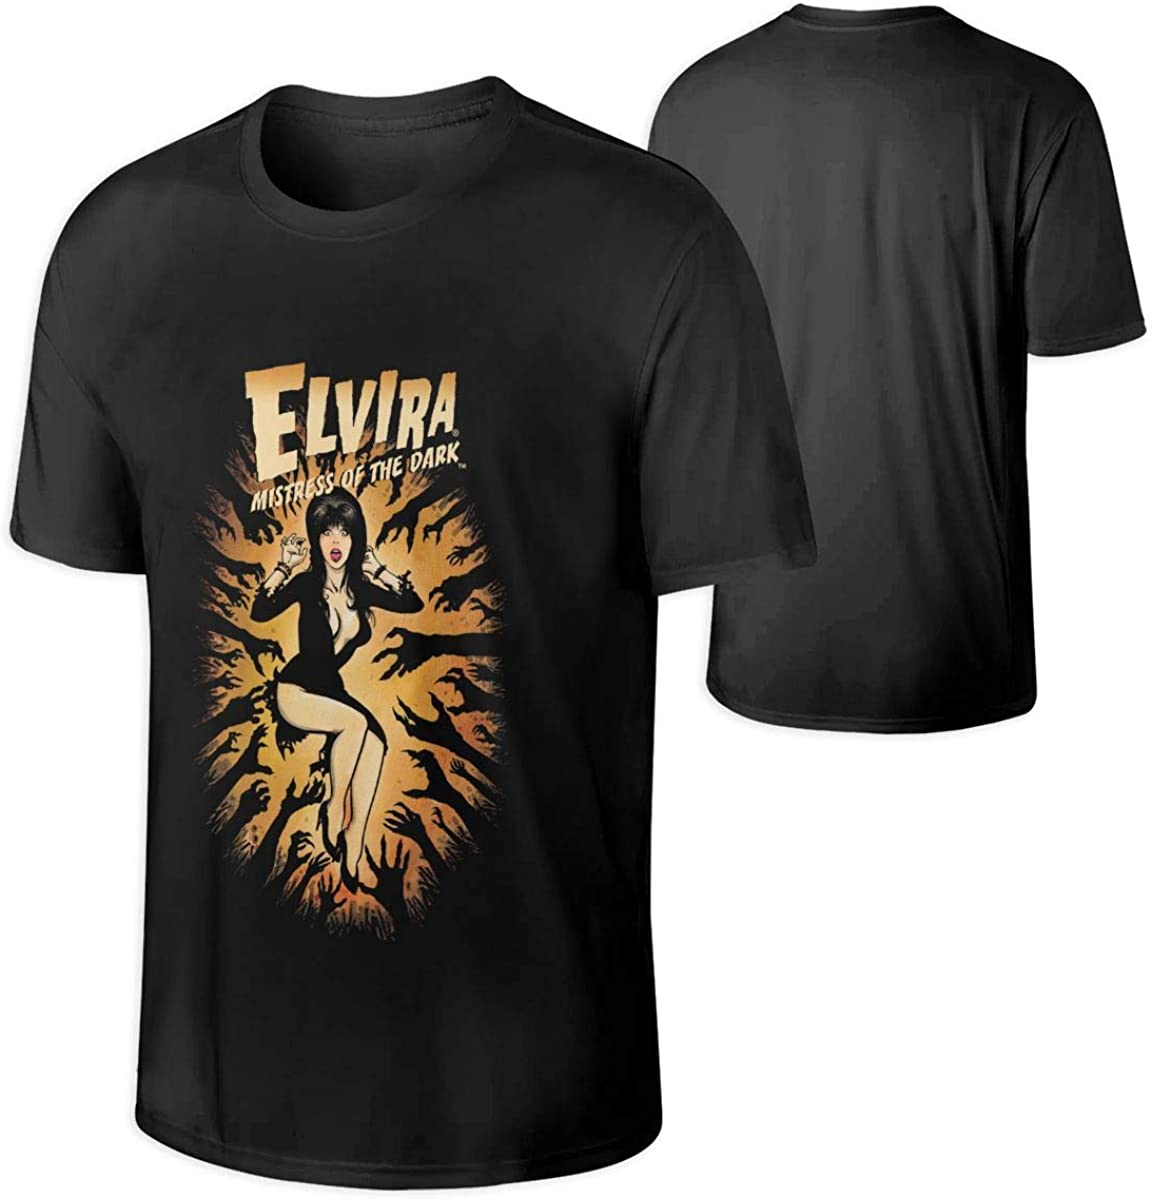 Elvira in The Dark Halloween T Shirts for Men Great Match with Jeans,Pants,Leggings,Shorts